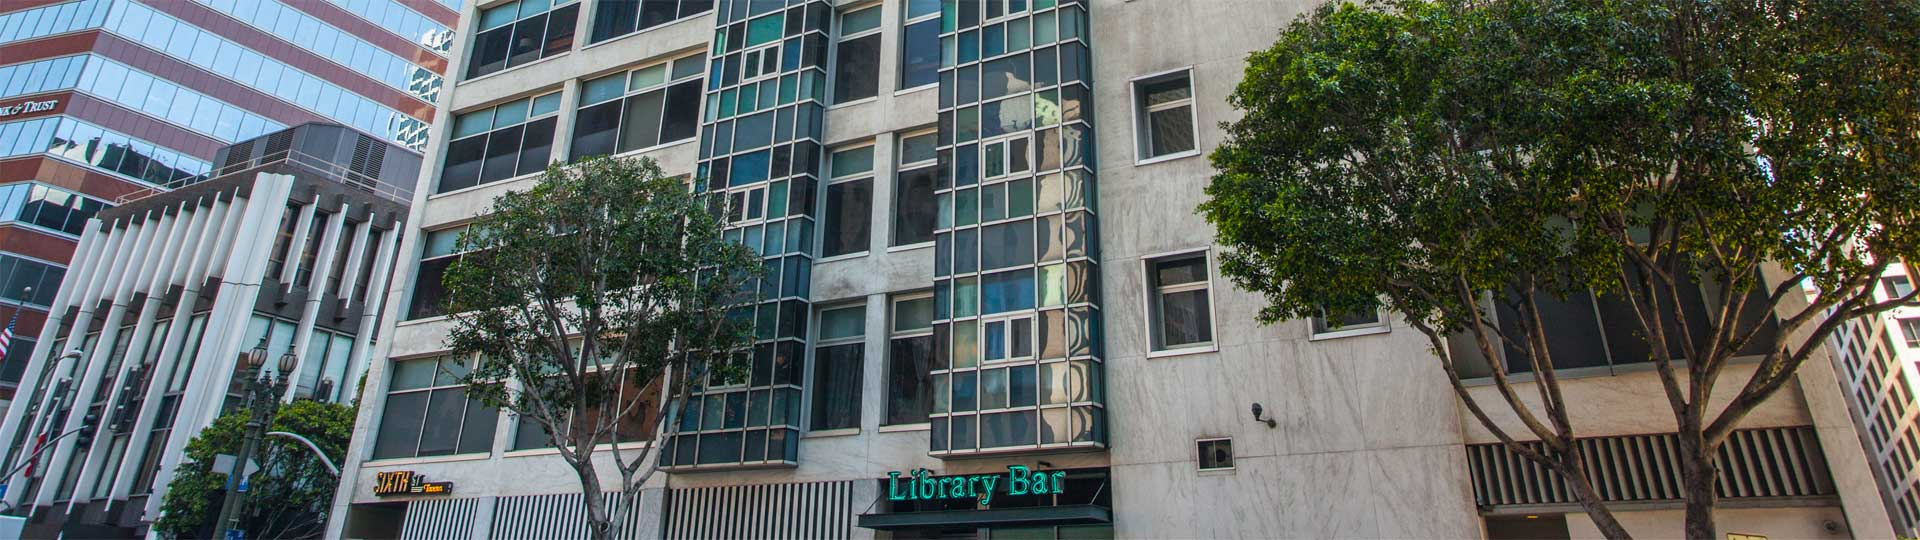 Library Court